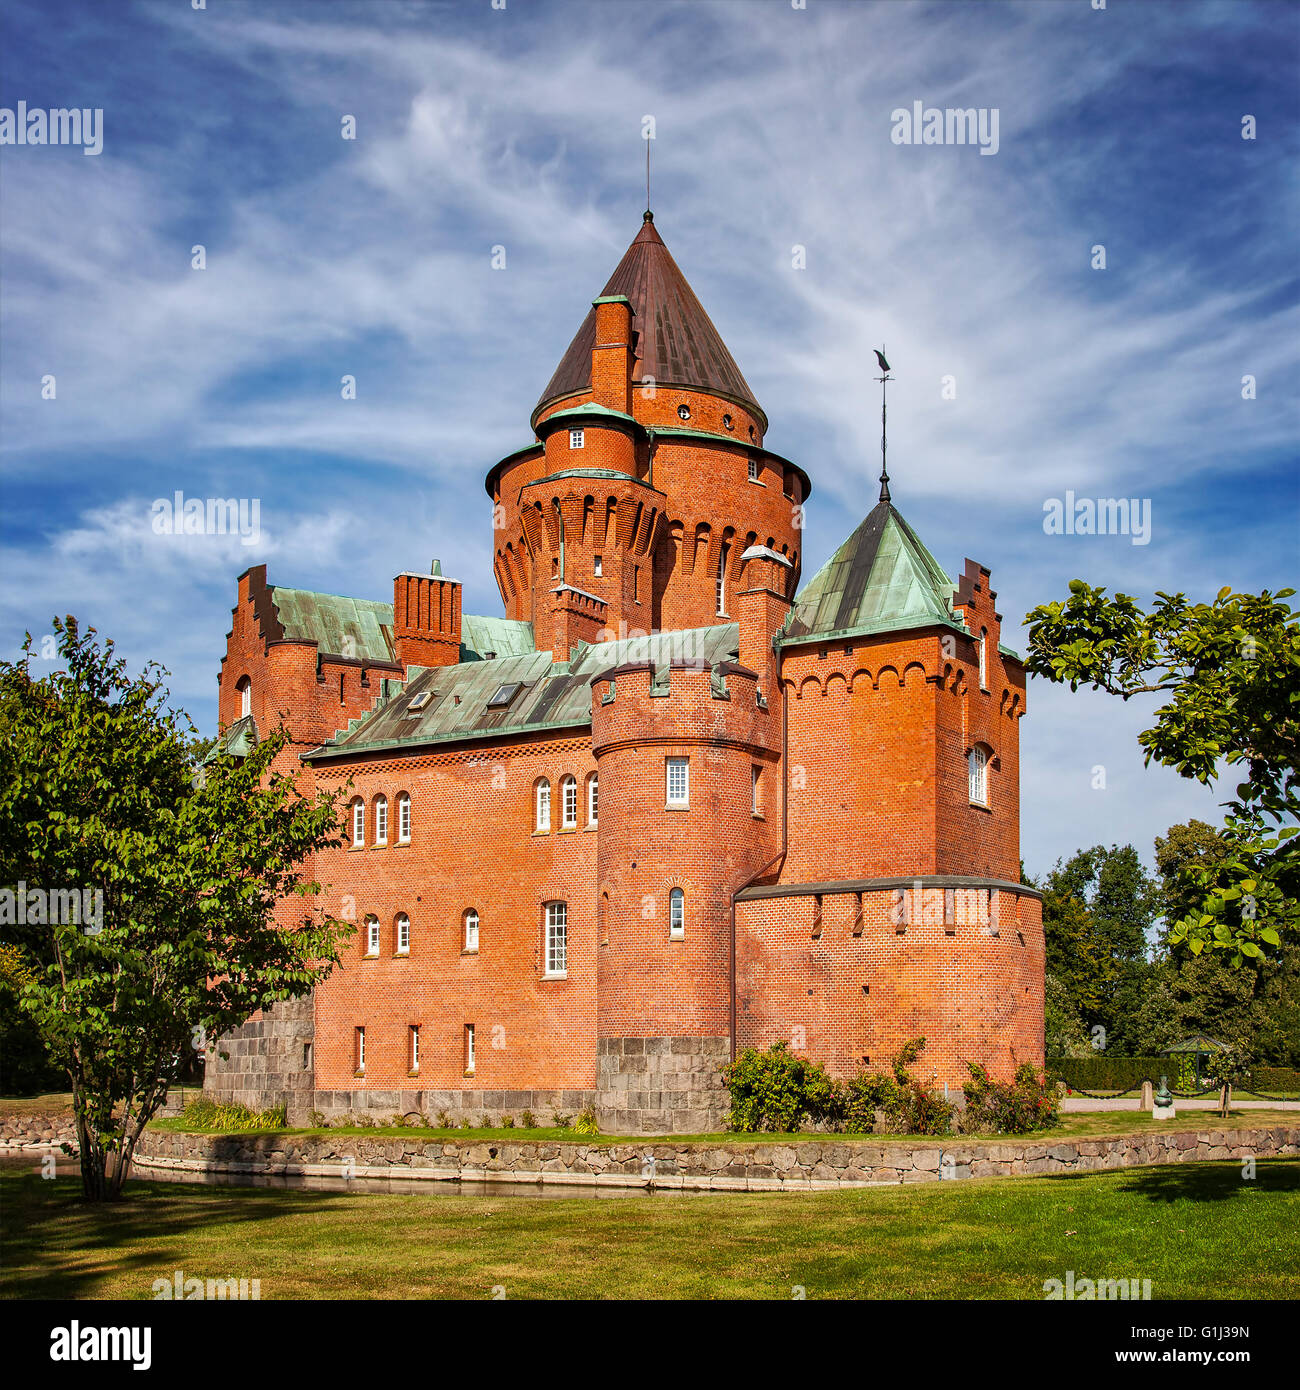 Image of the castle of Hjularod in Sweden, built in a french medieval romantic style. - Stock Image